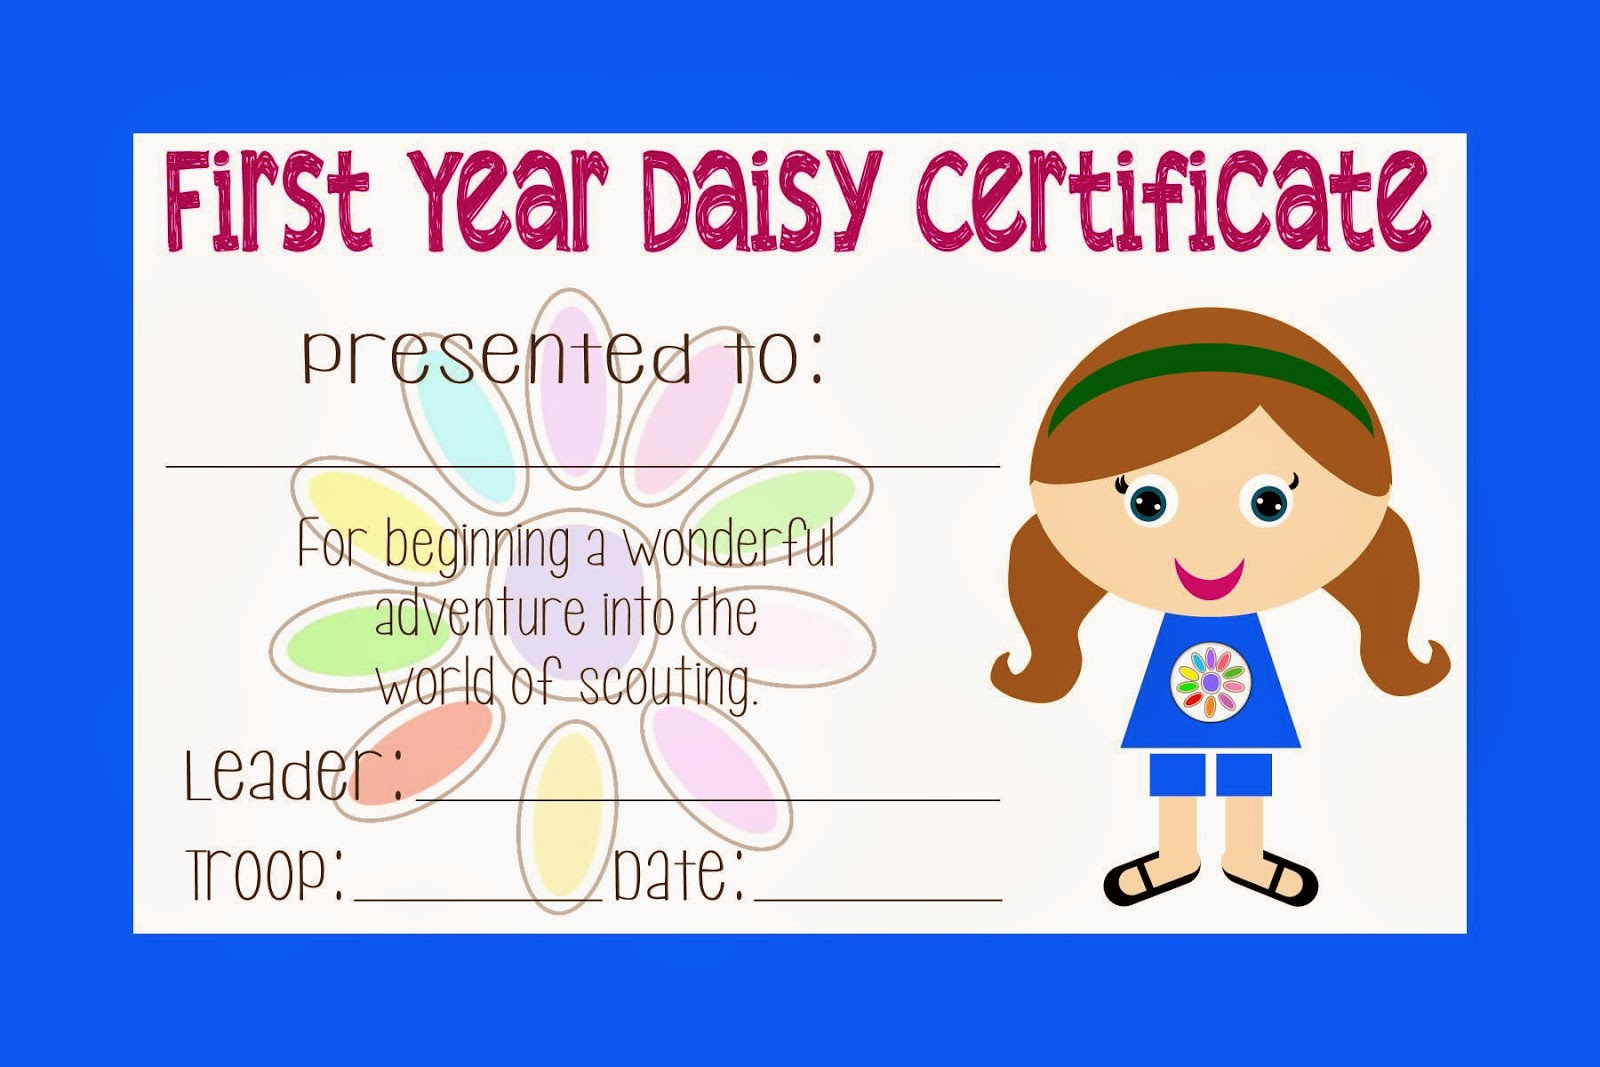 photograph regarding Girl Scout Certificates Printable Free identified as 2 Magical Mothers: Lady Scout Daisy Certification